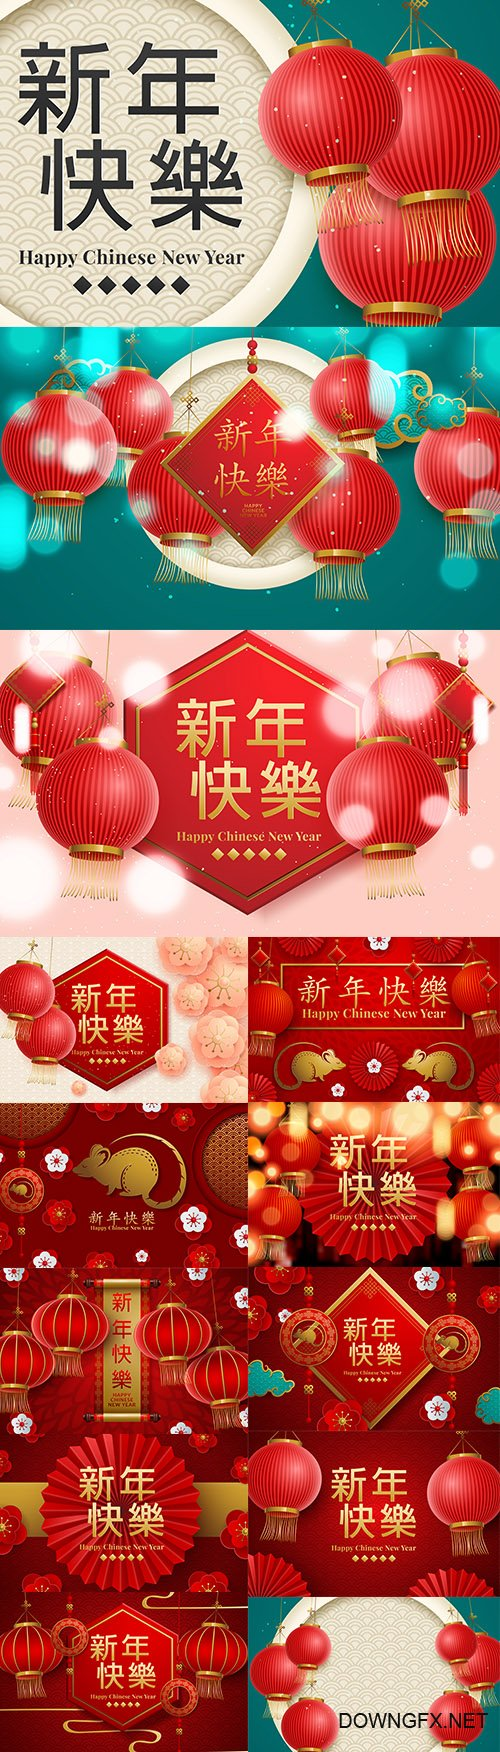 Chinese Greeting Card New Year Illustration Vol 2